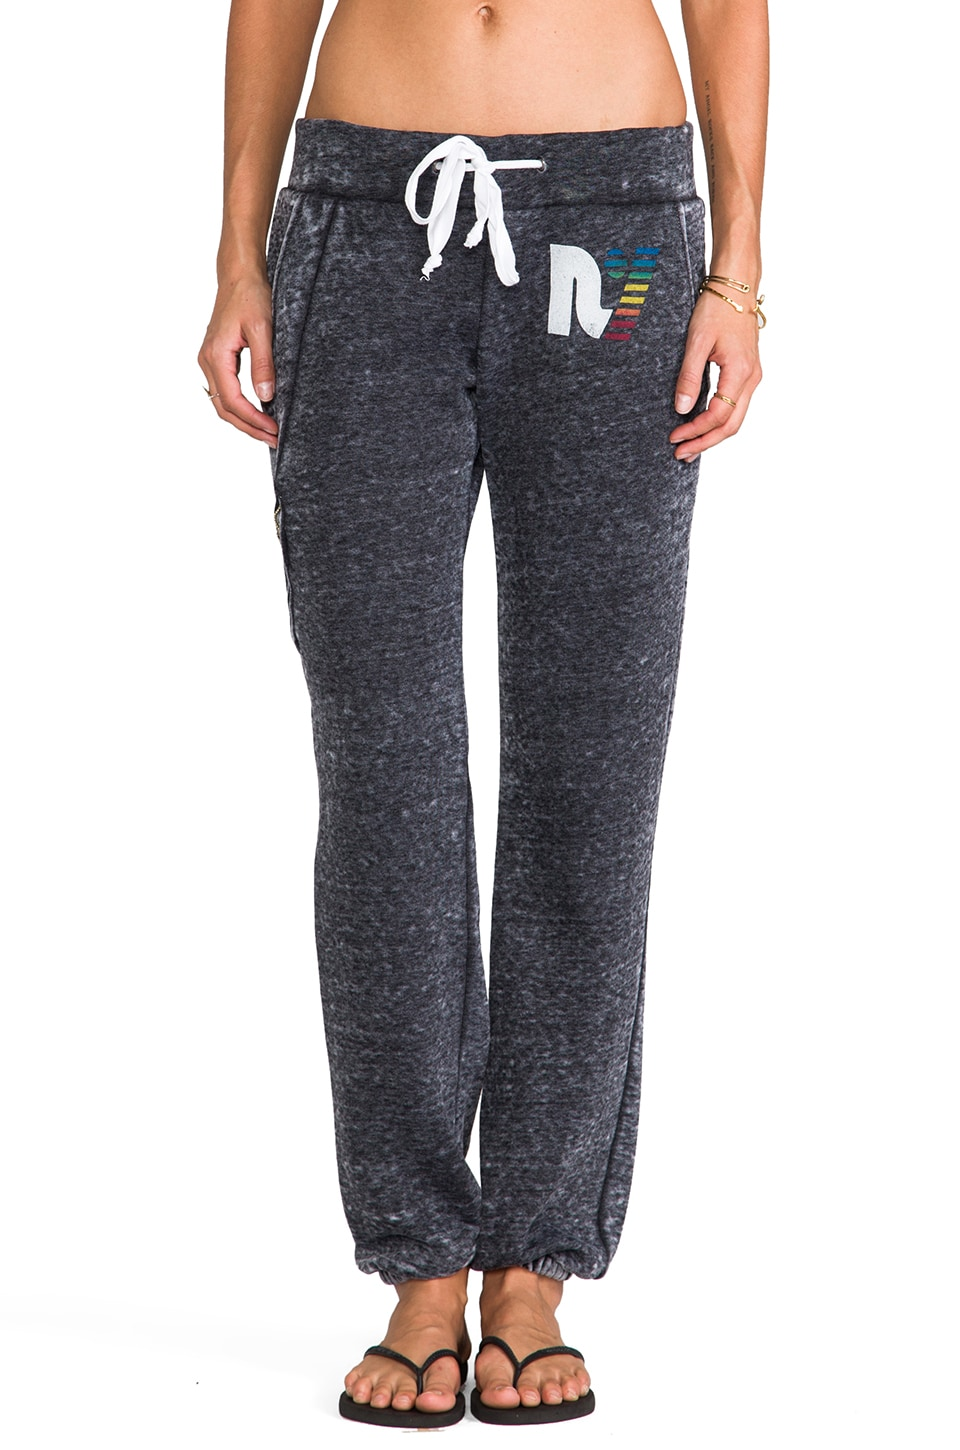 Rebel Yell Jogging Pants in Heather Gray